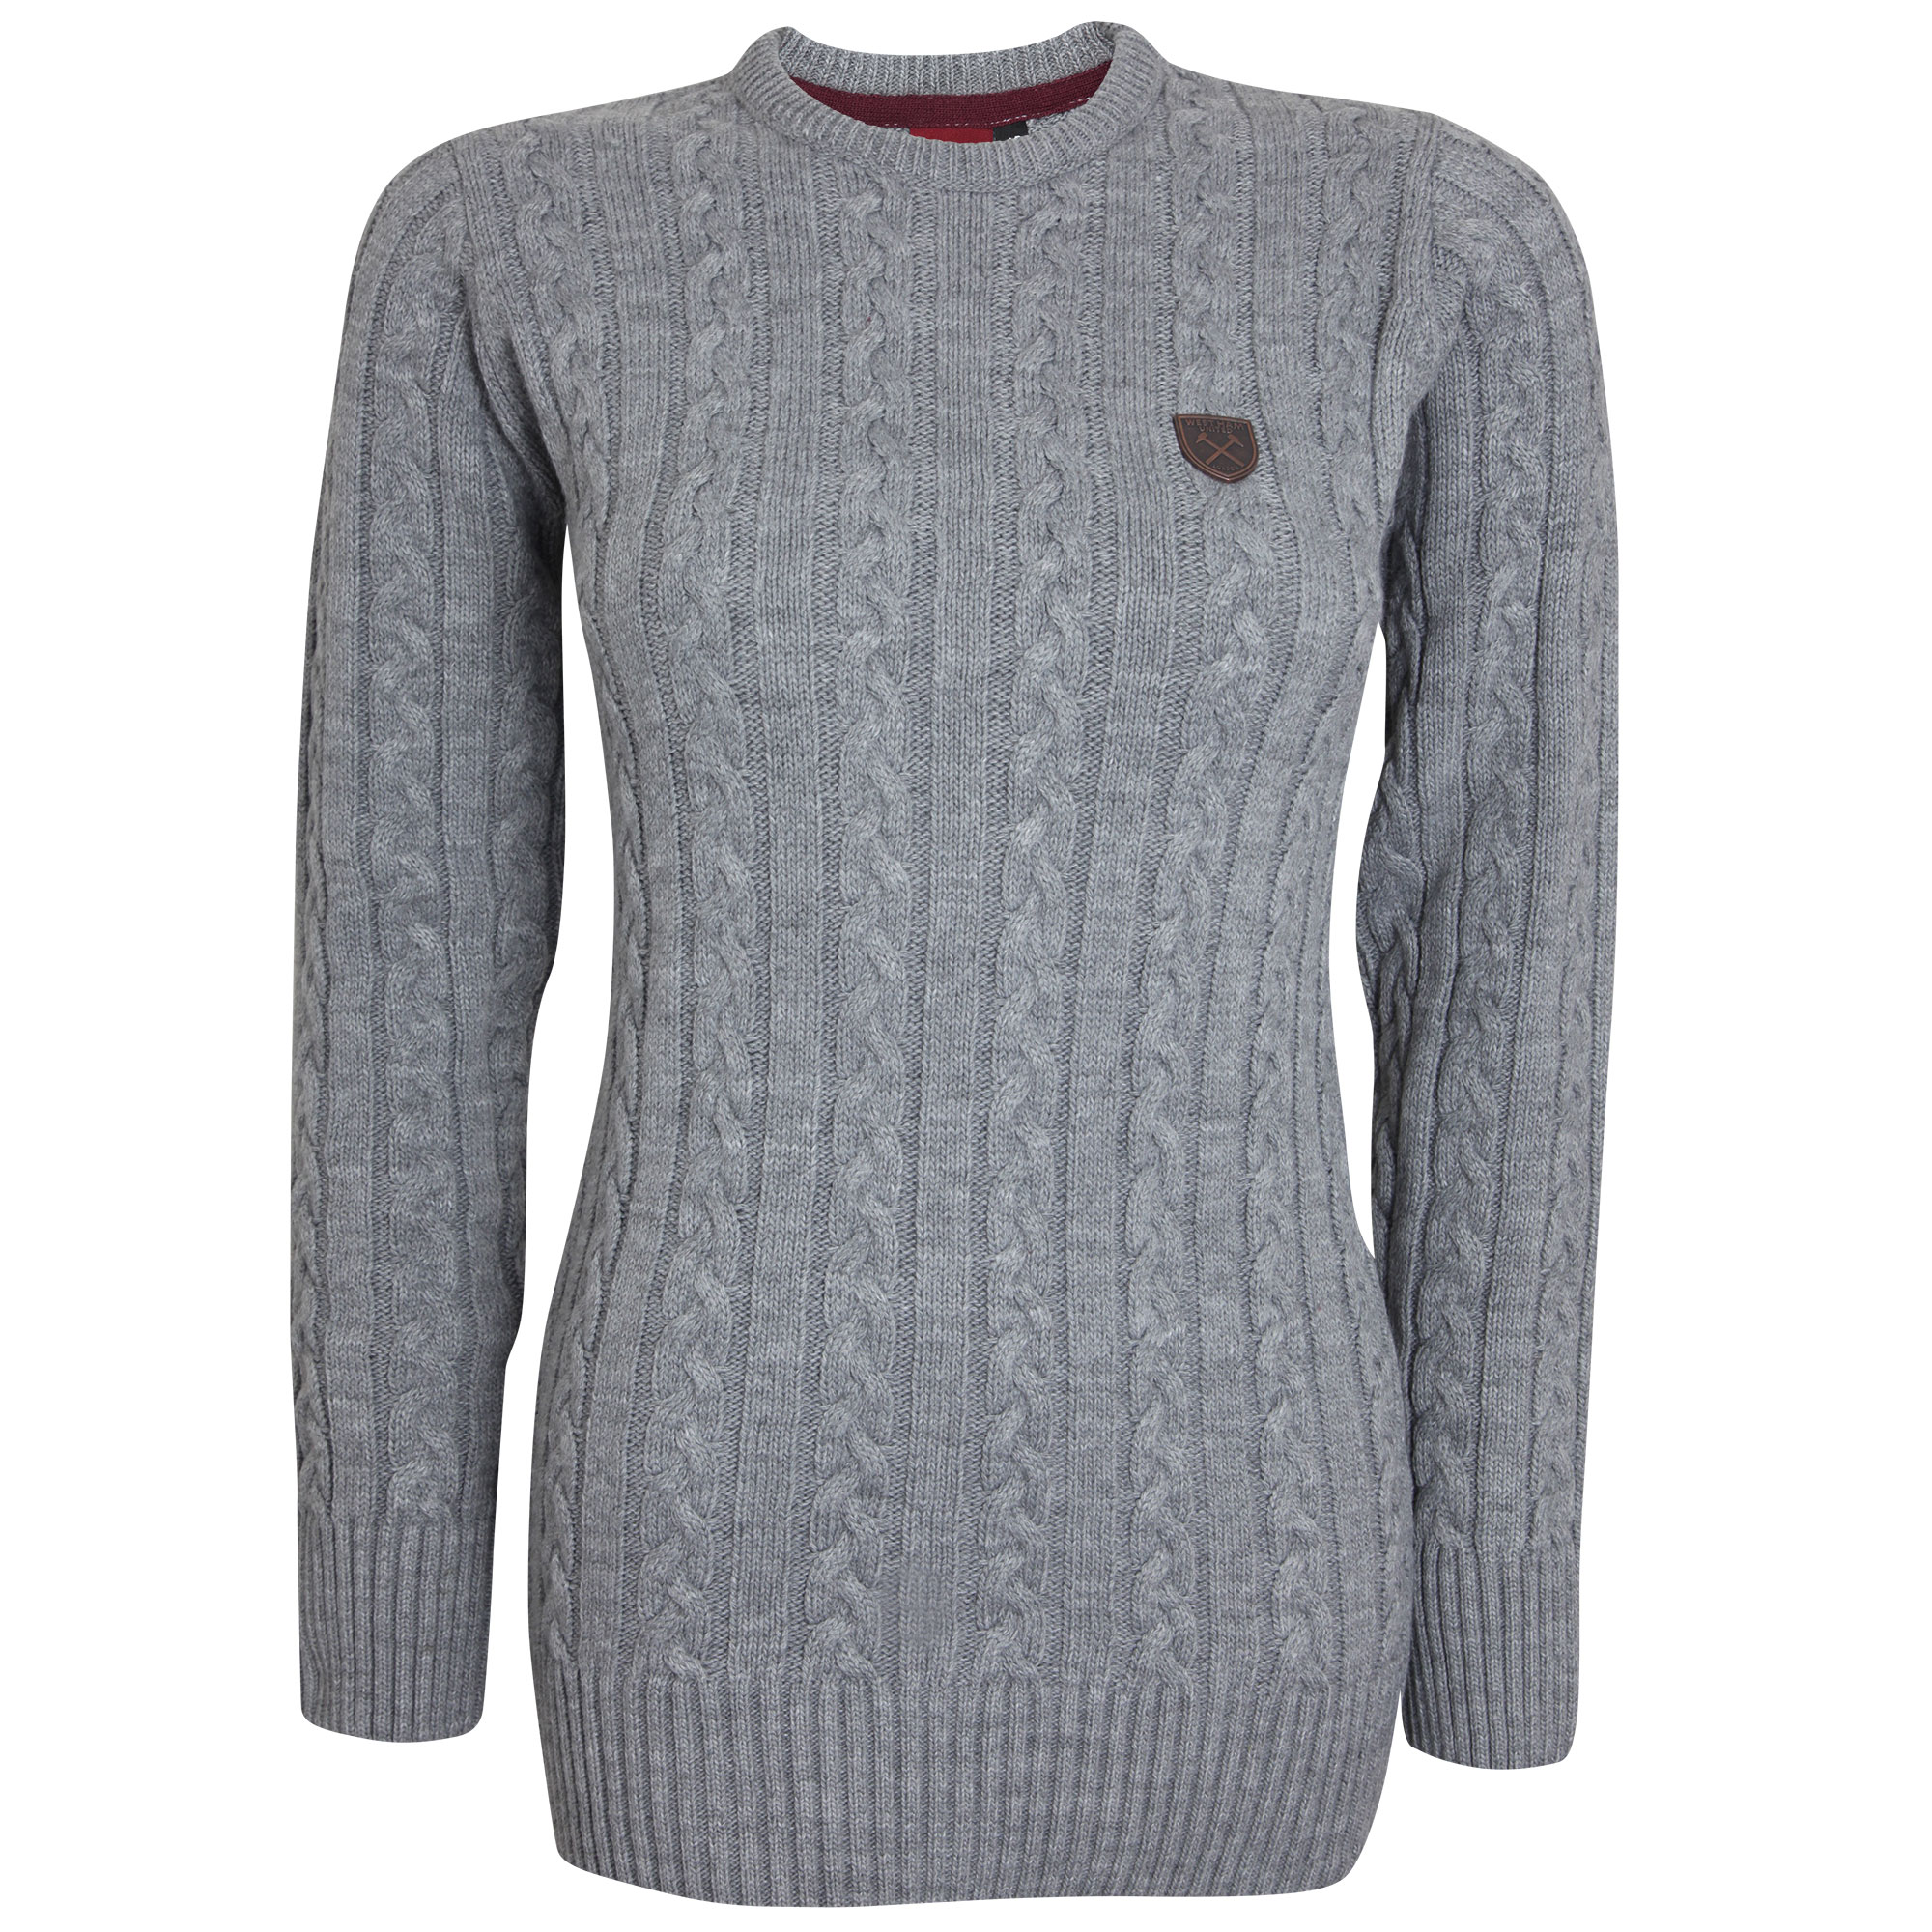 LADIES GREY CABLE KNIT JUMPER